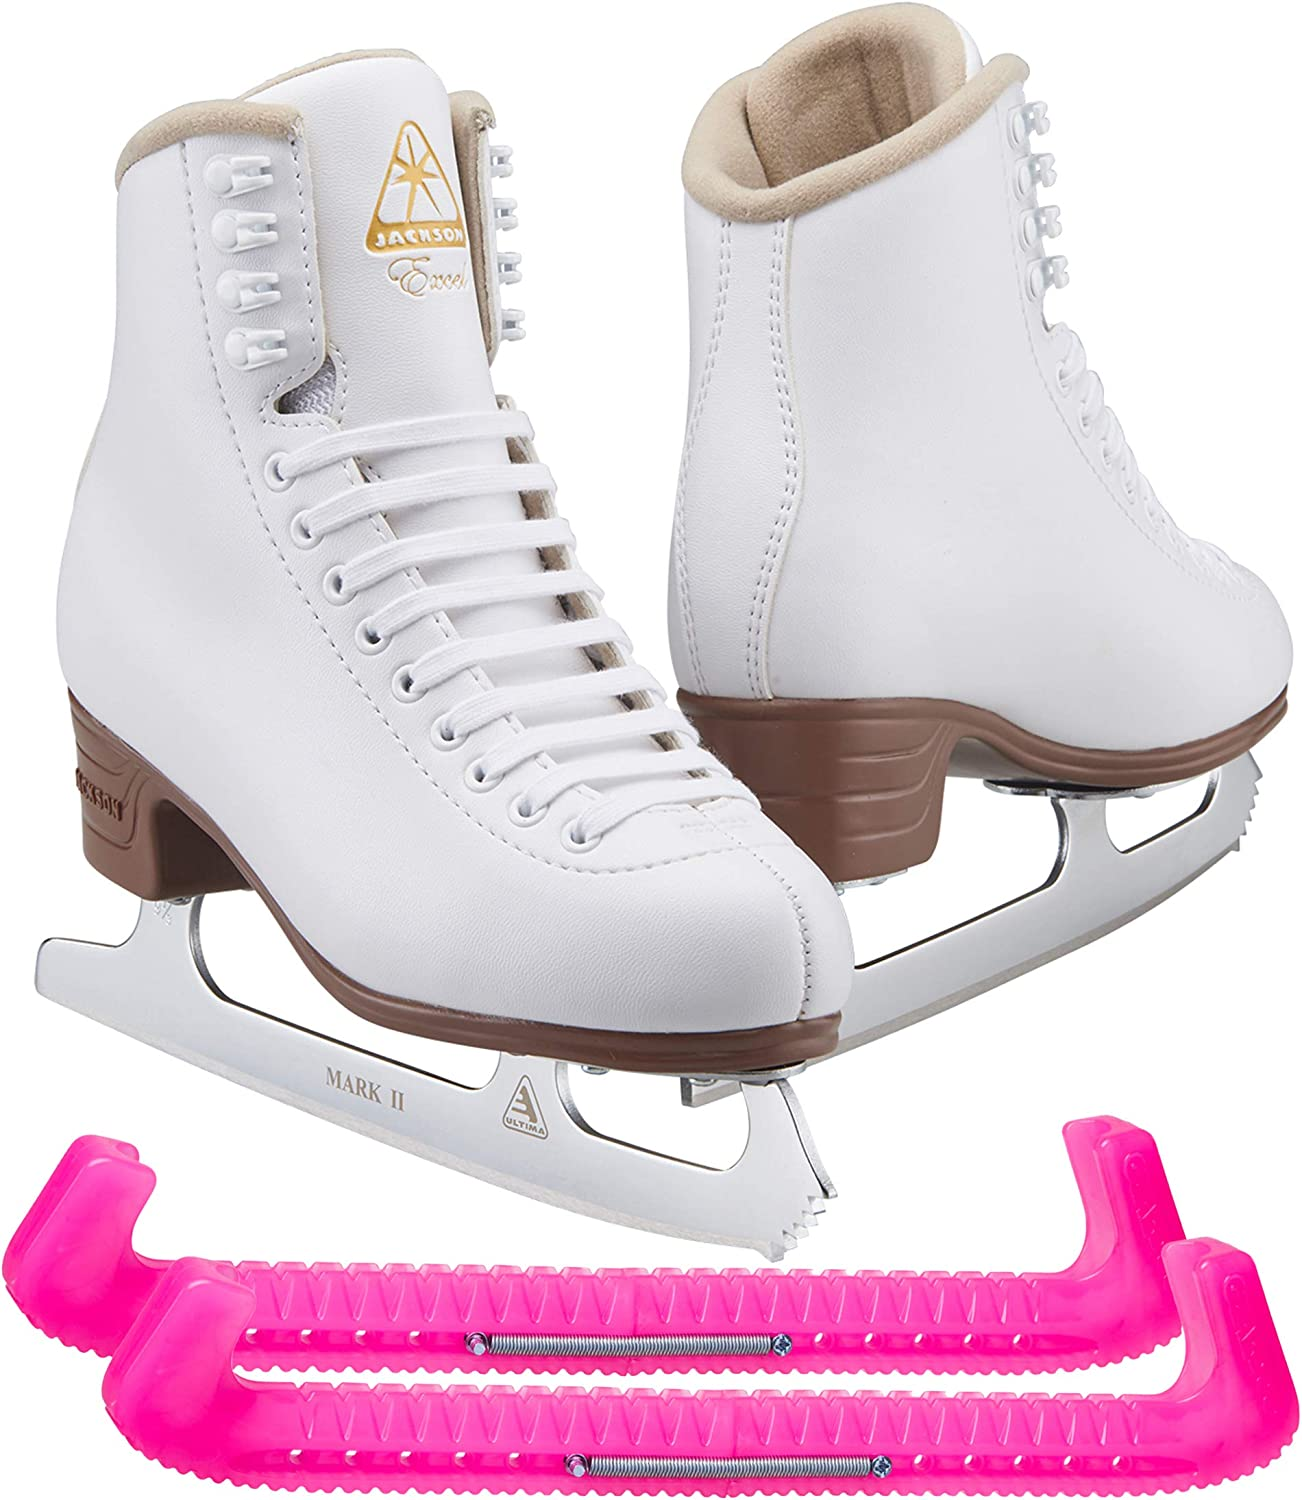 Spring new work one after another Jackson Ultima Excel White Figure Ice Women Skates Online limited product for and Girls